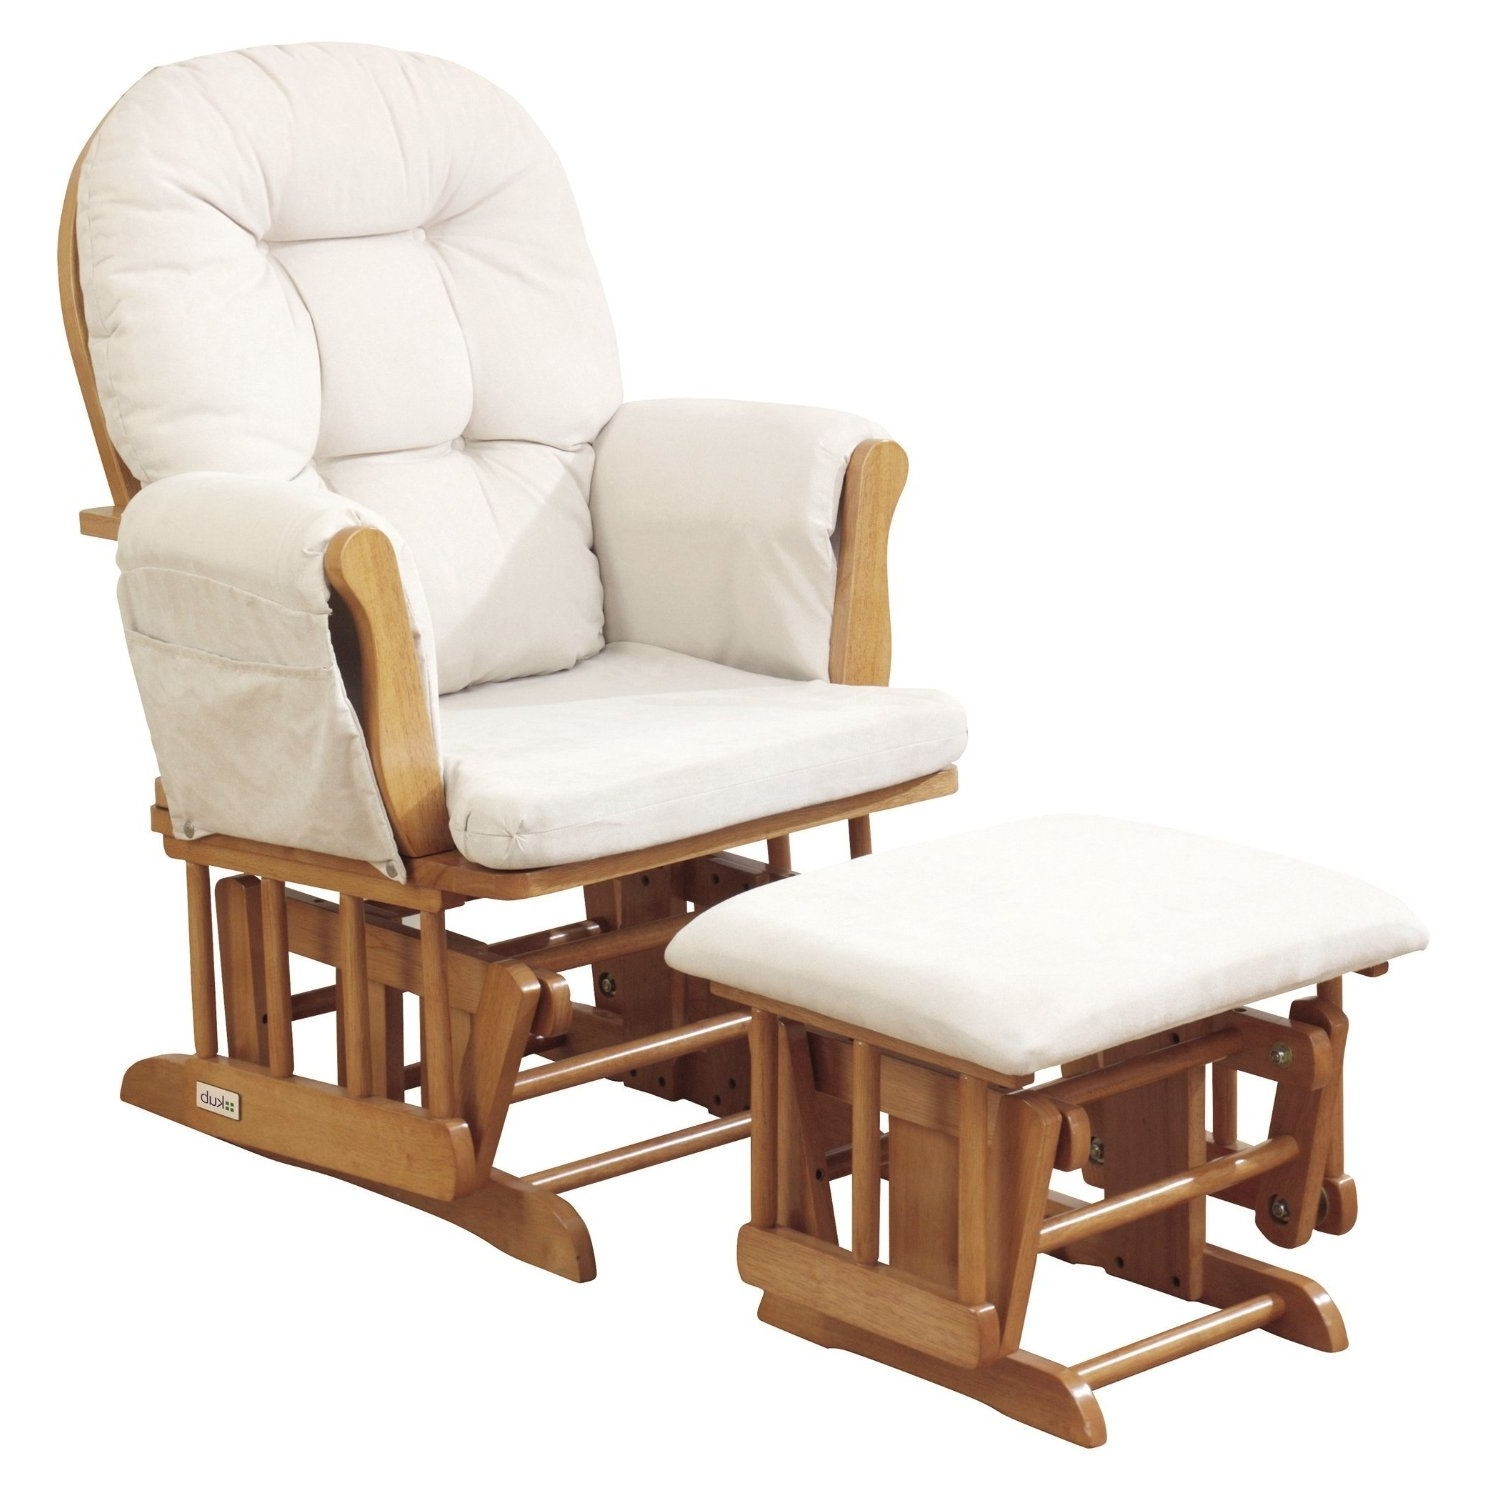 Preferred Rocking Chairs With Ottoman In Furniture: Glider Rocking Chair On Sale (View 12 of 20)